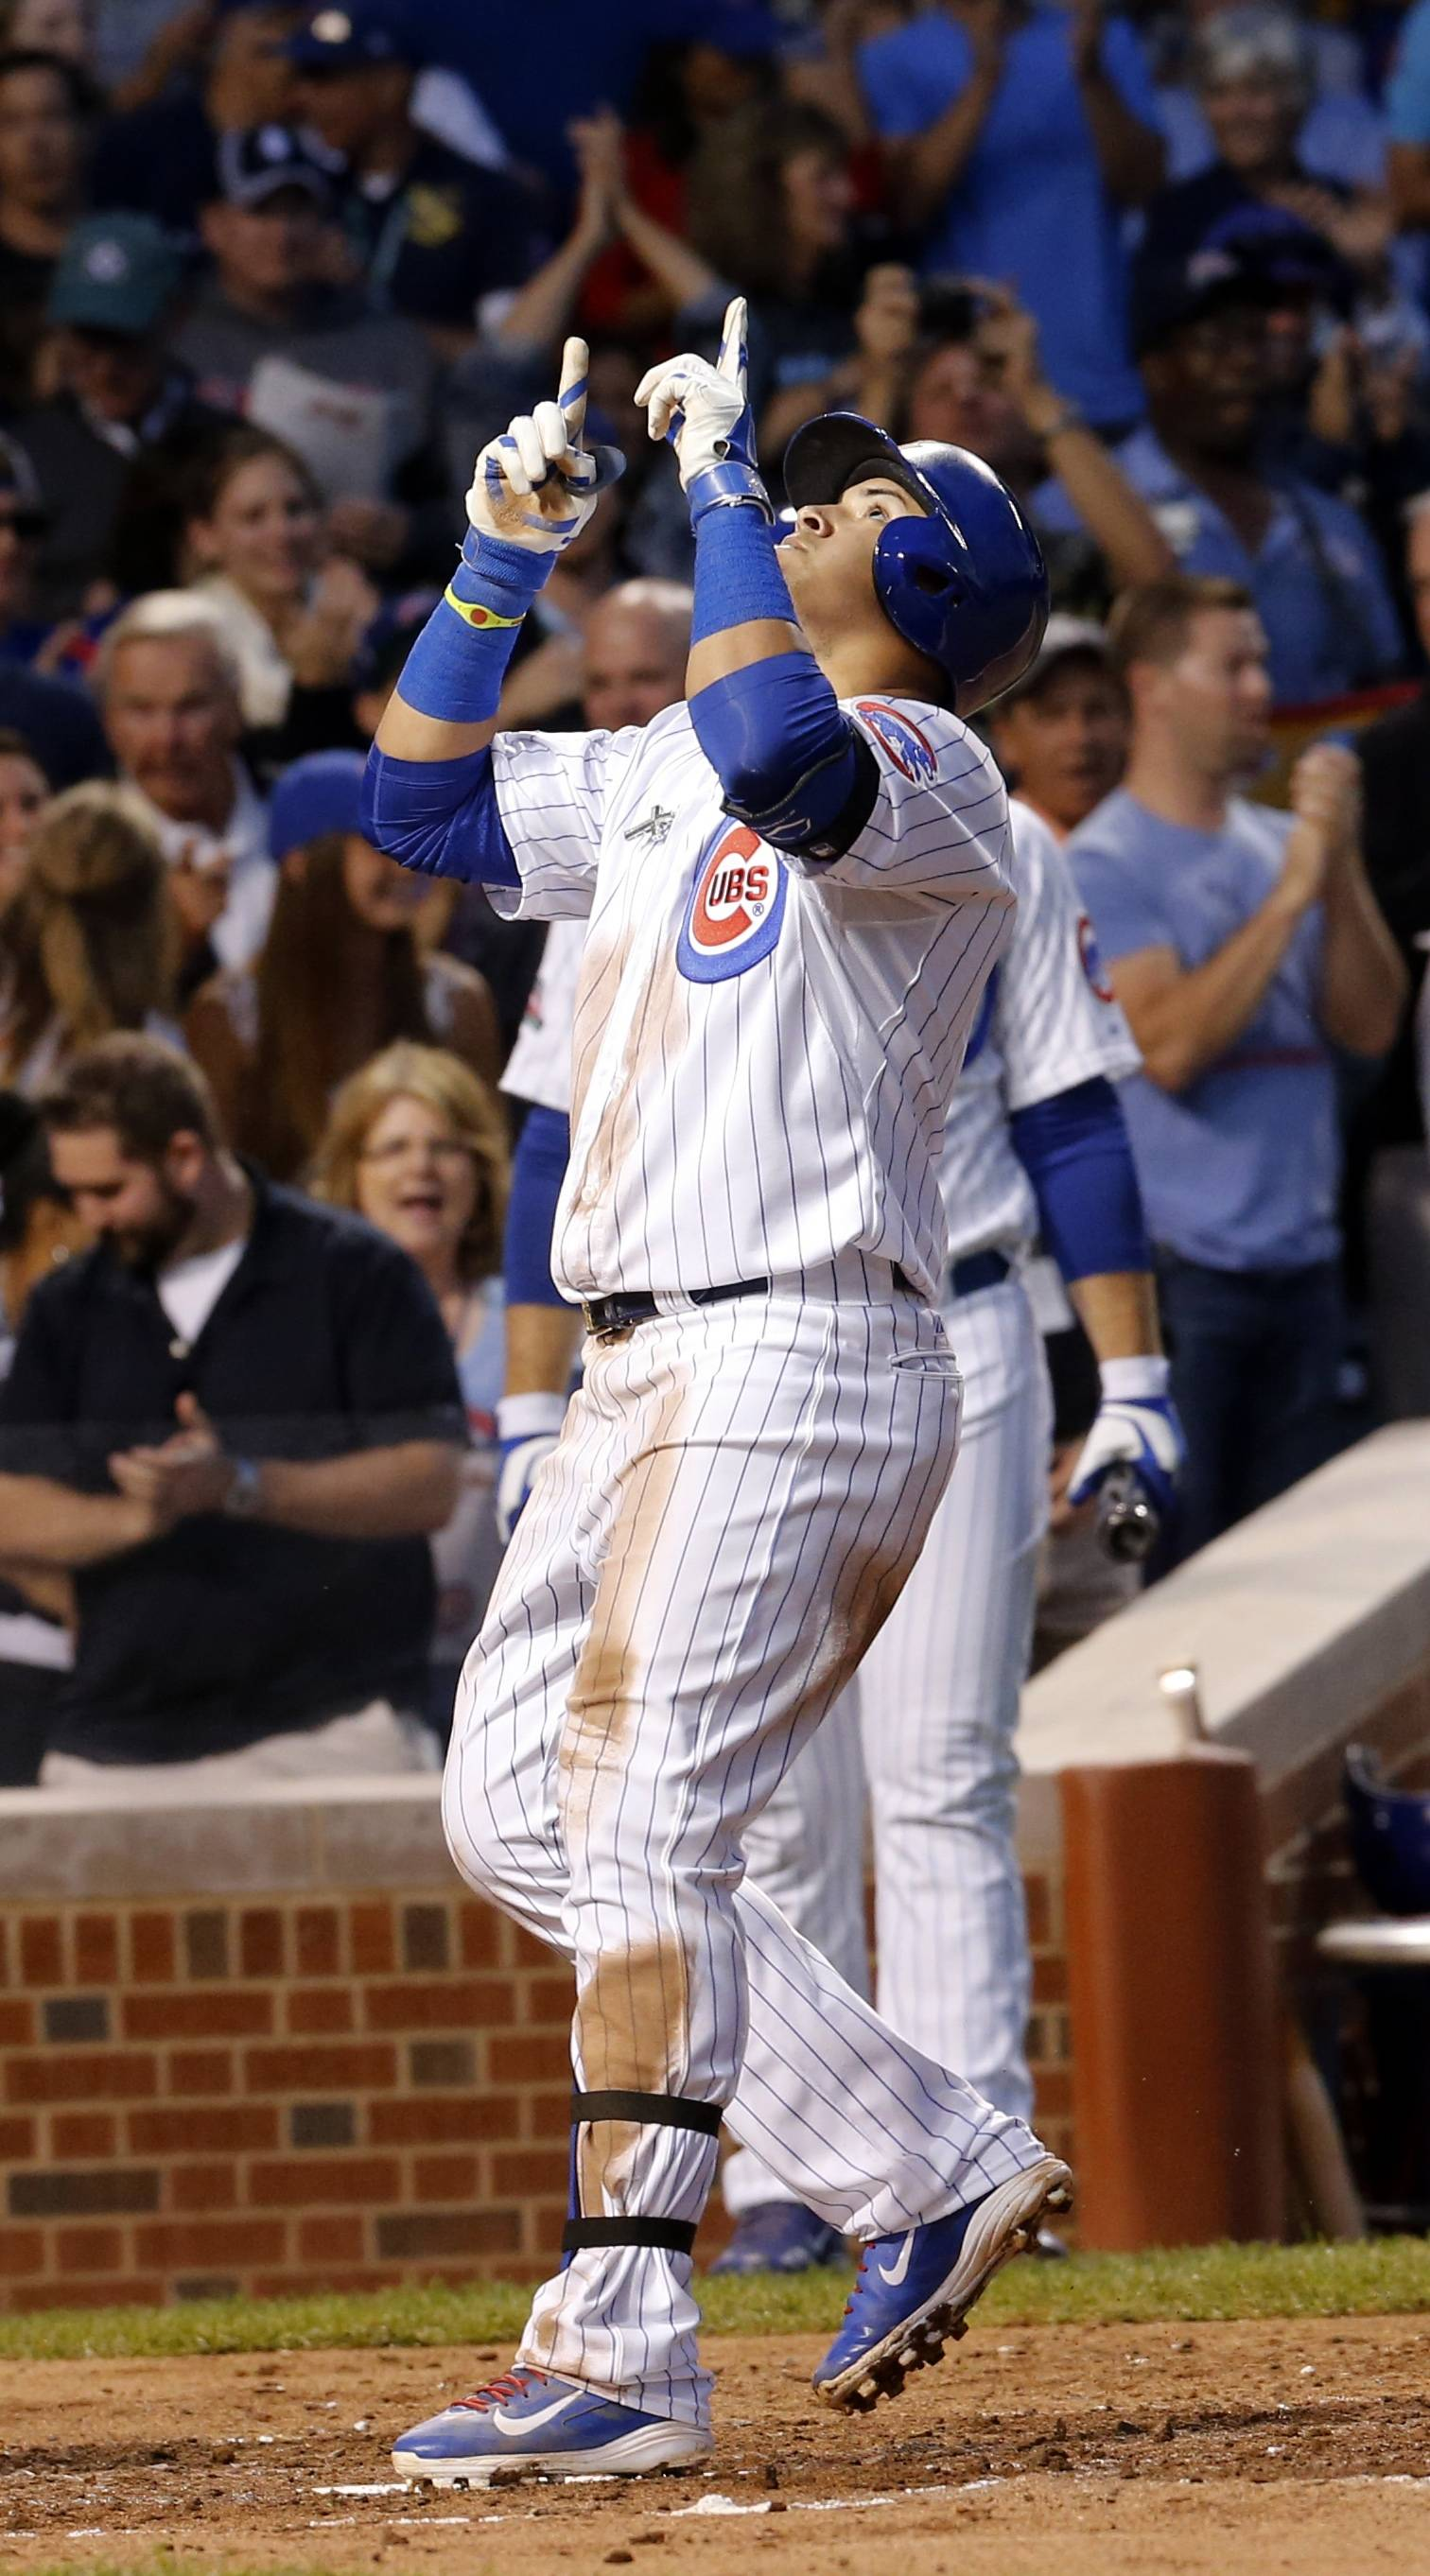 Javier Baez celebrates after hitting a home run, his first at Wrigley Field, during the third inning Wednesday night.